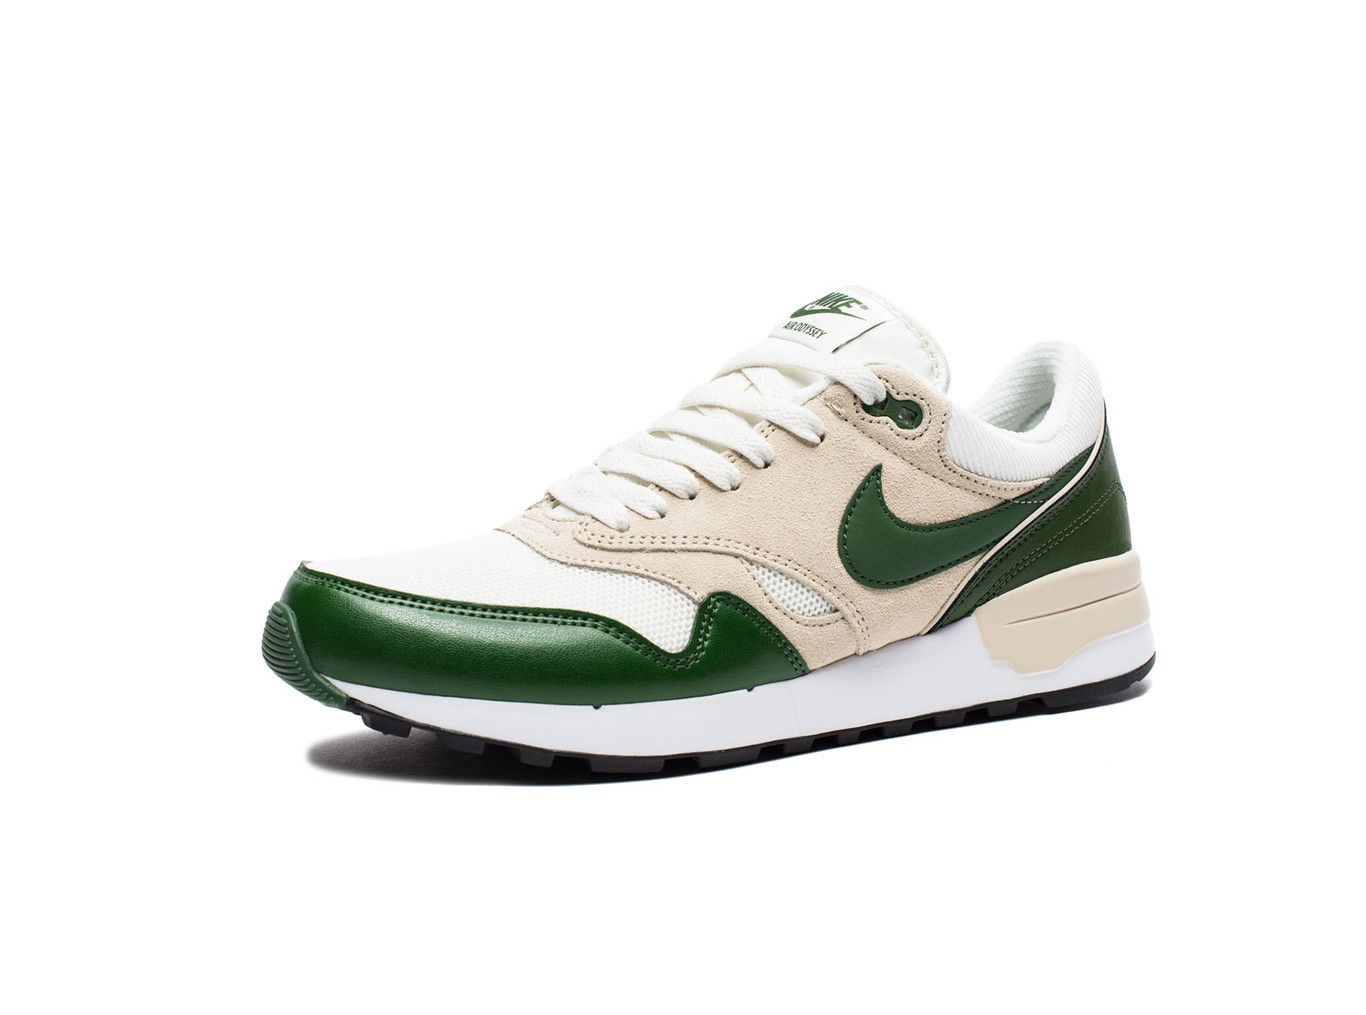 NIKE AIR ODYSSEY - SAIL/RATTAN/FOREST GREEN | Undefeated